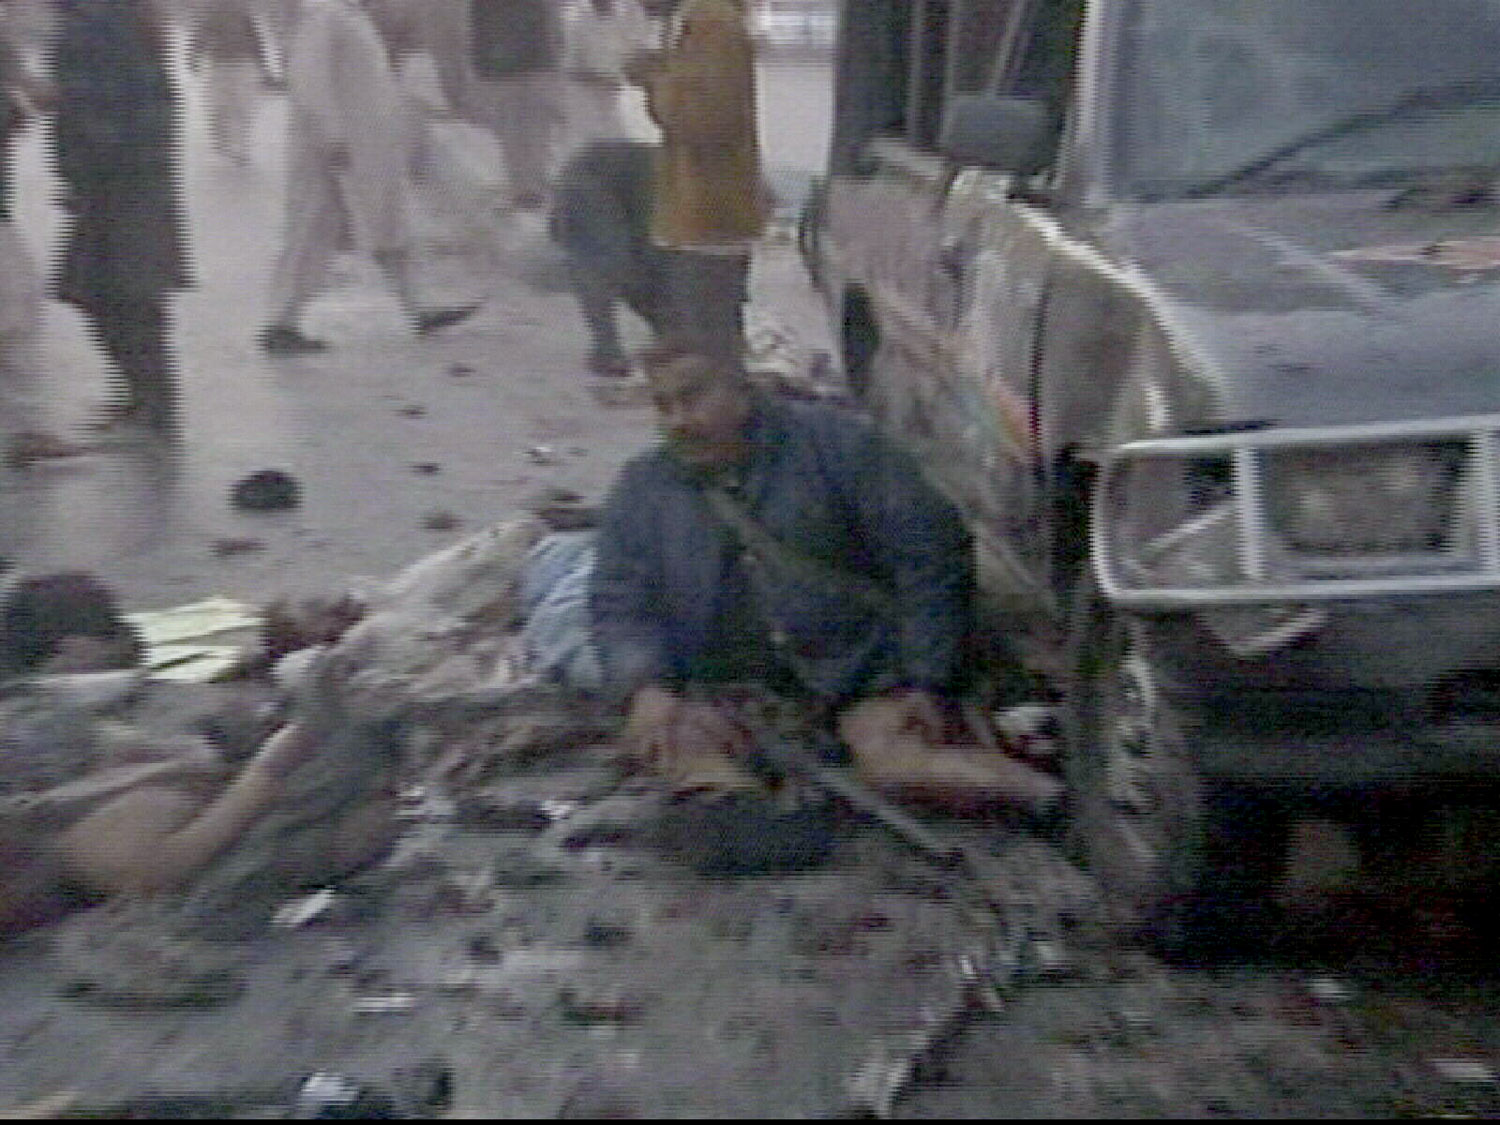 The aftermath of a suicide bombing is seen yesterday in Rawalpindi, Pakistan in this image taken from APTN.